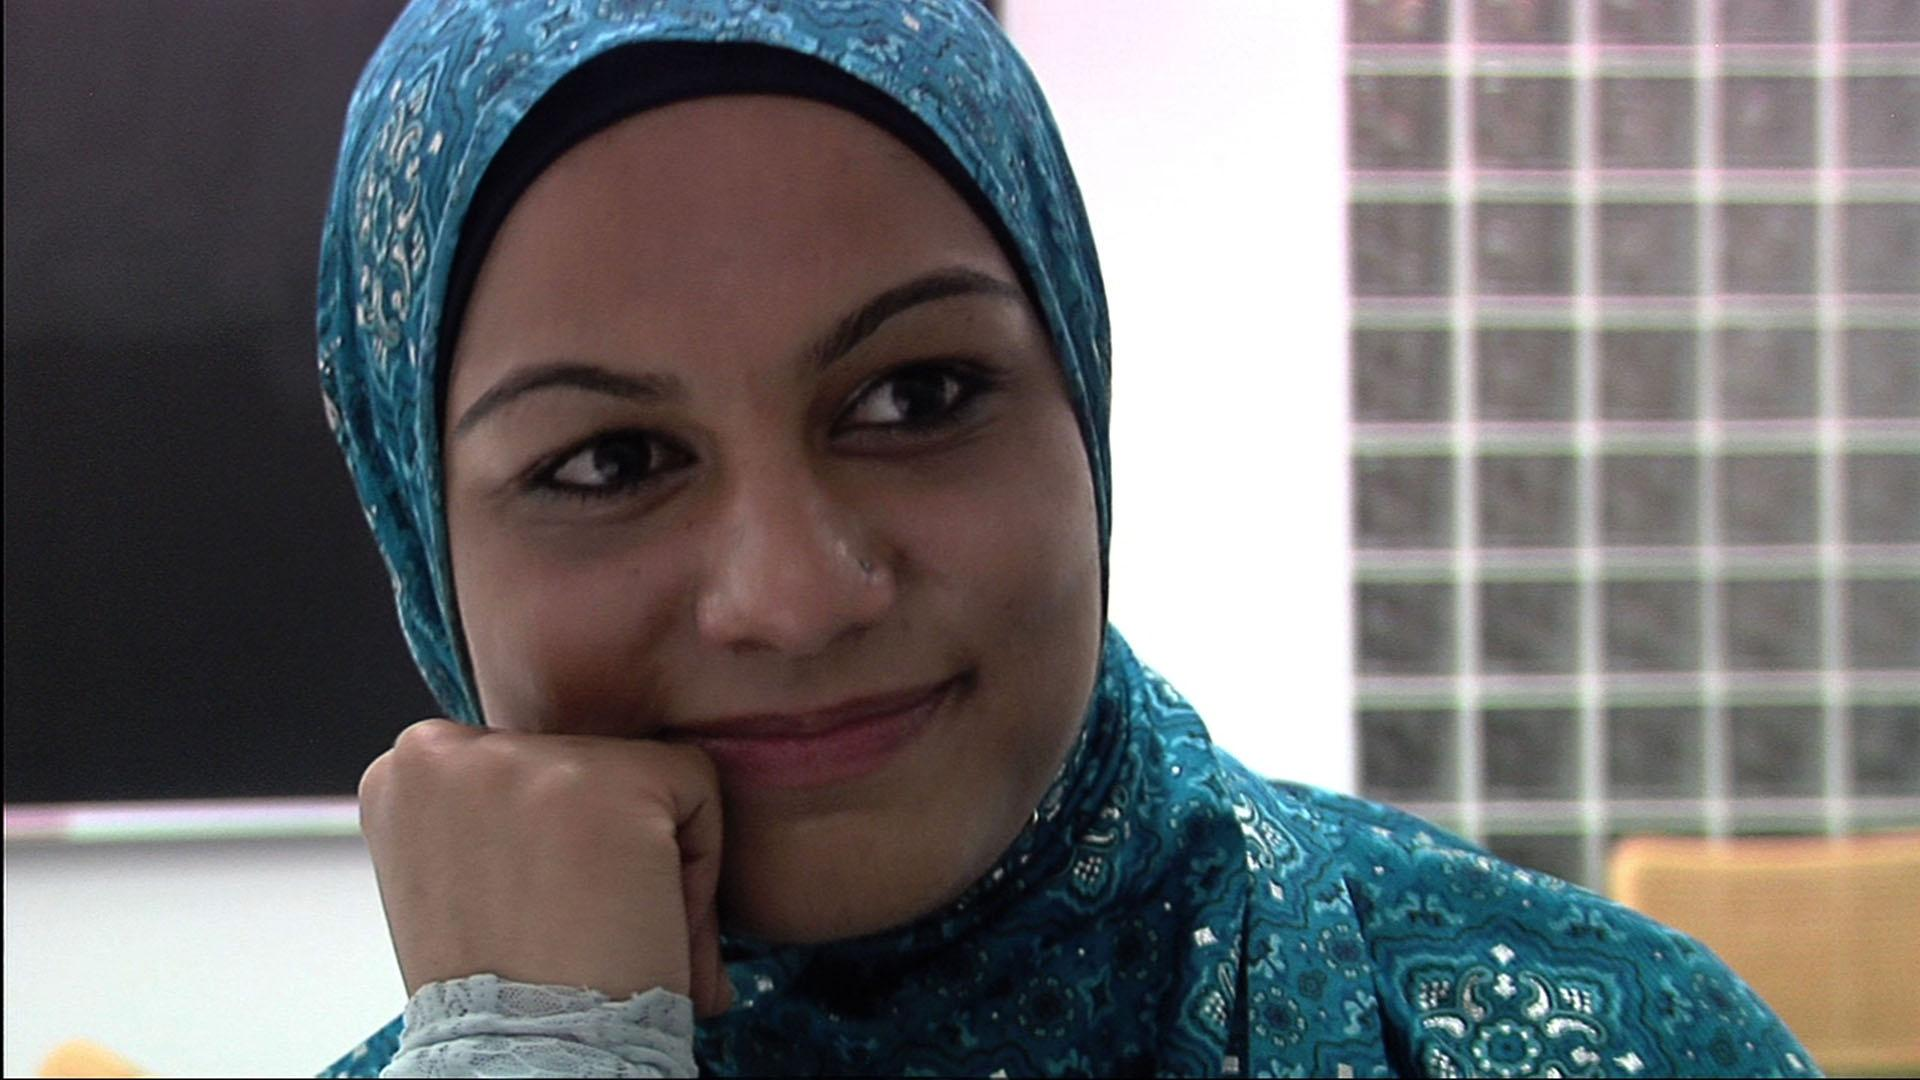 twin cities muslim girl personals Some people thought the criticism of the edina public schools would die down after a hard-fought school board election last fall those people were wrong.